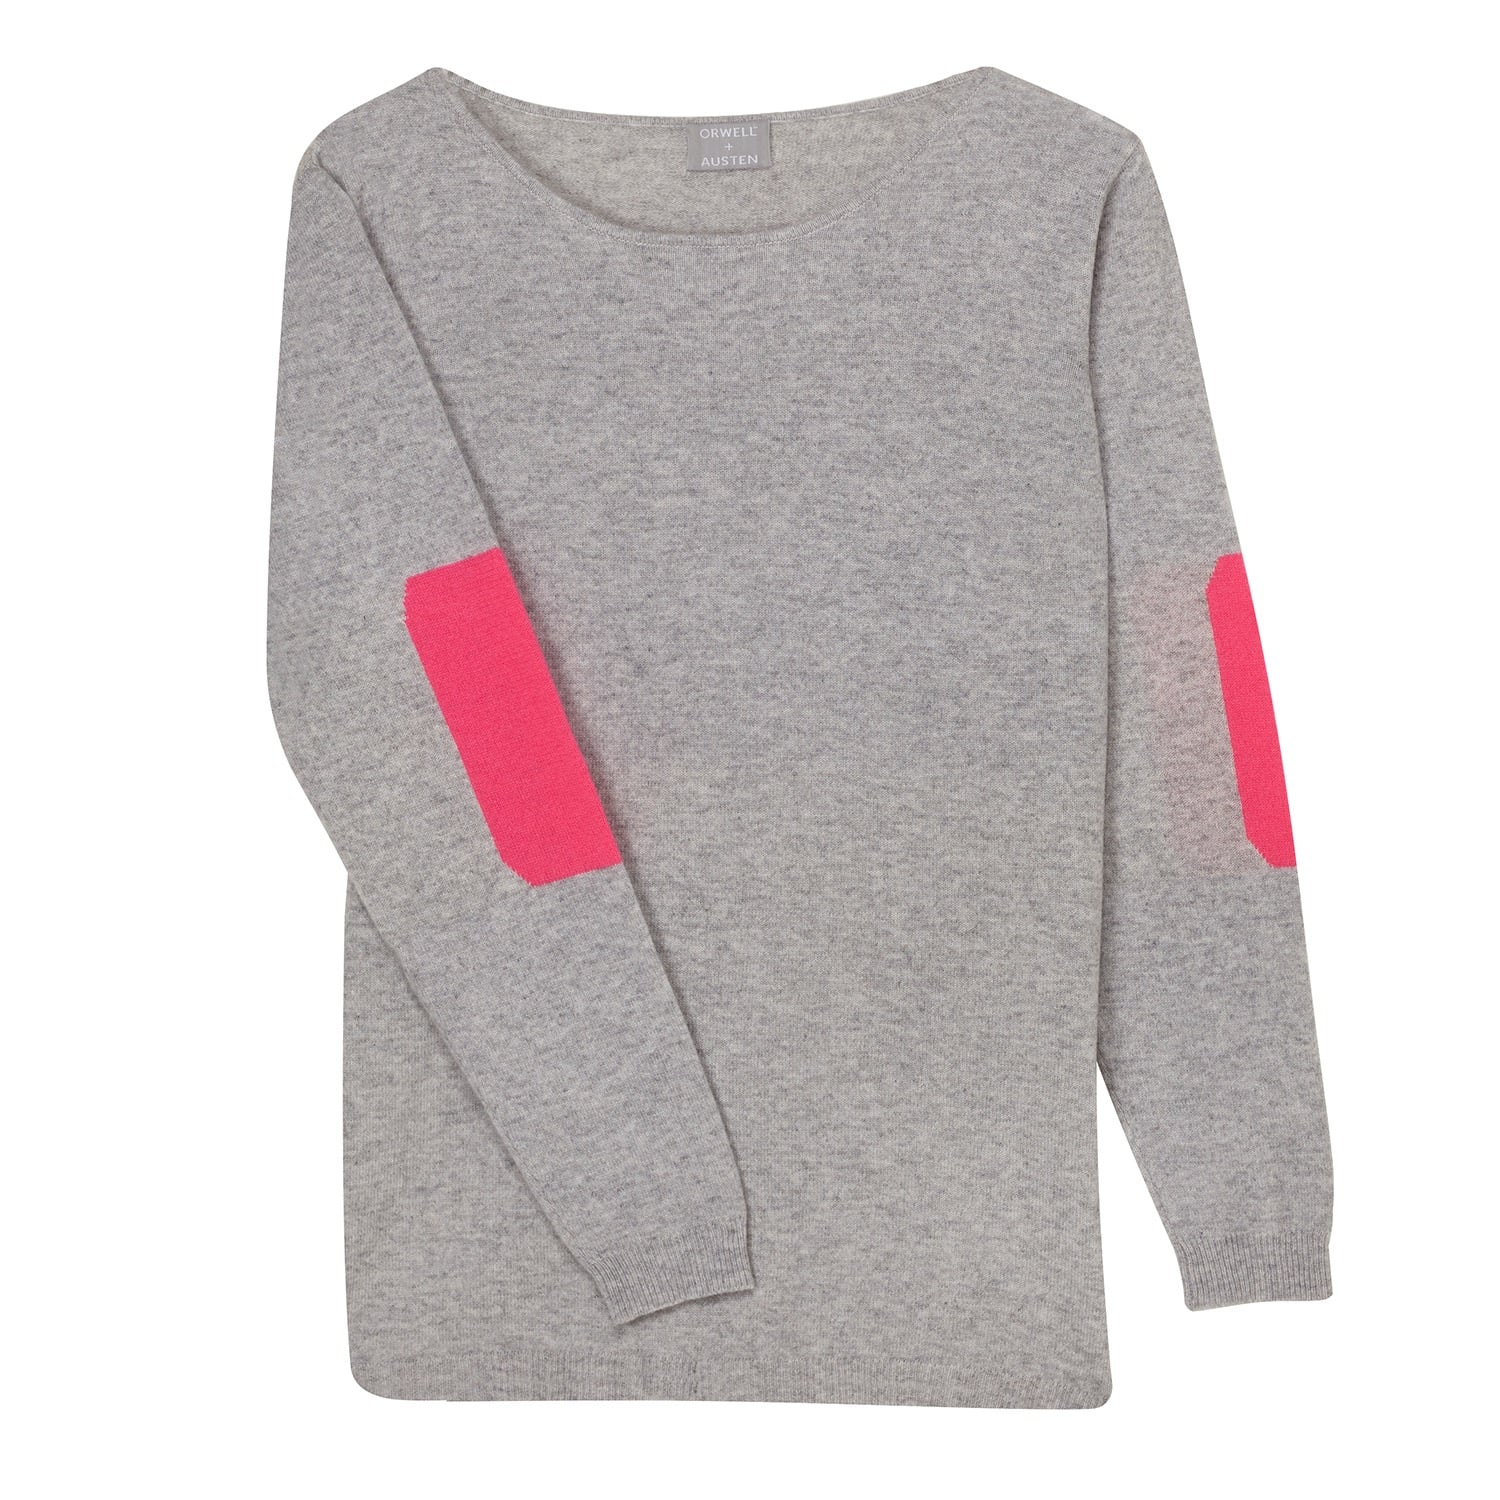 316055ec995 Grey   Neon Pink Elbow Patch Sweater image